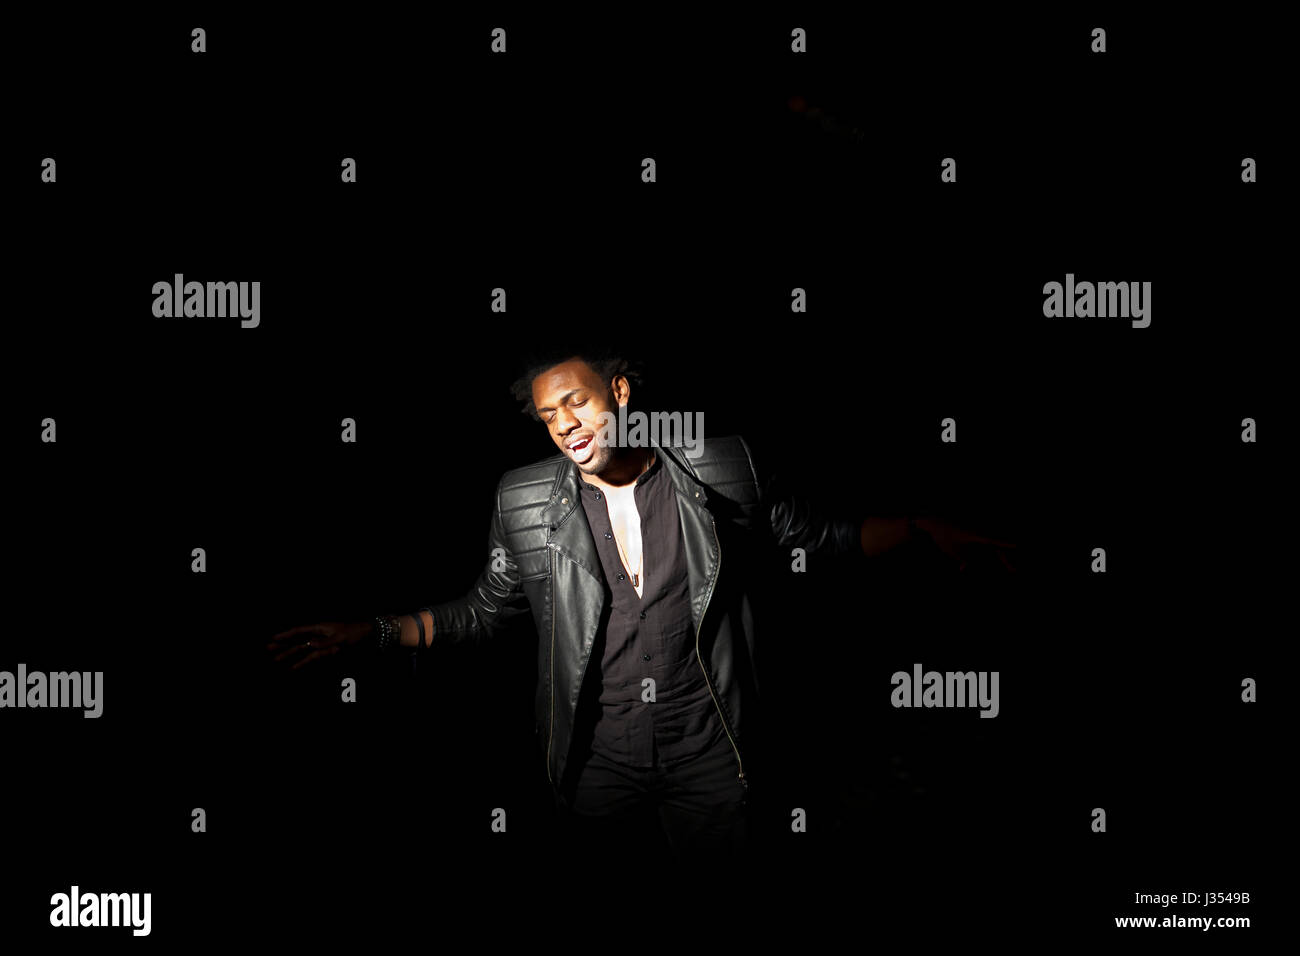 Young actor performing on stage - Stock Image